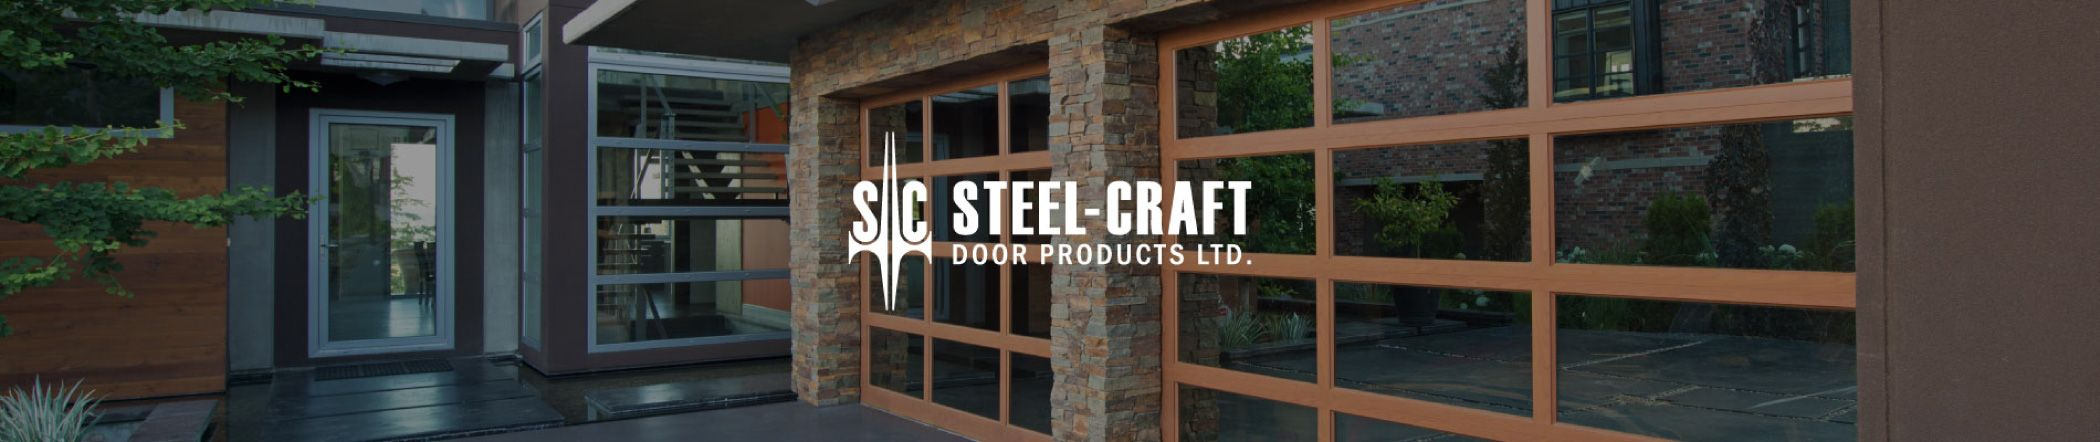 Steel-Craft Door Products LTD.